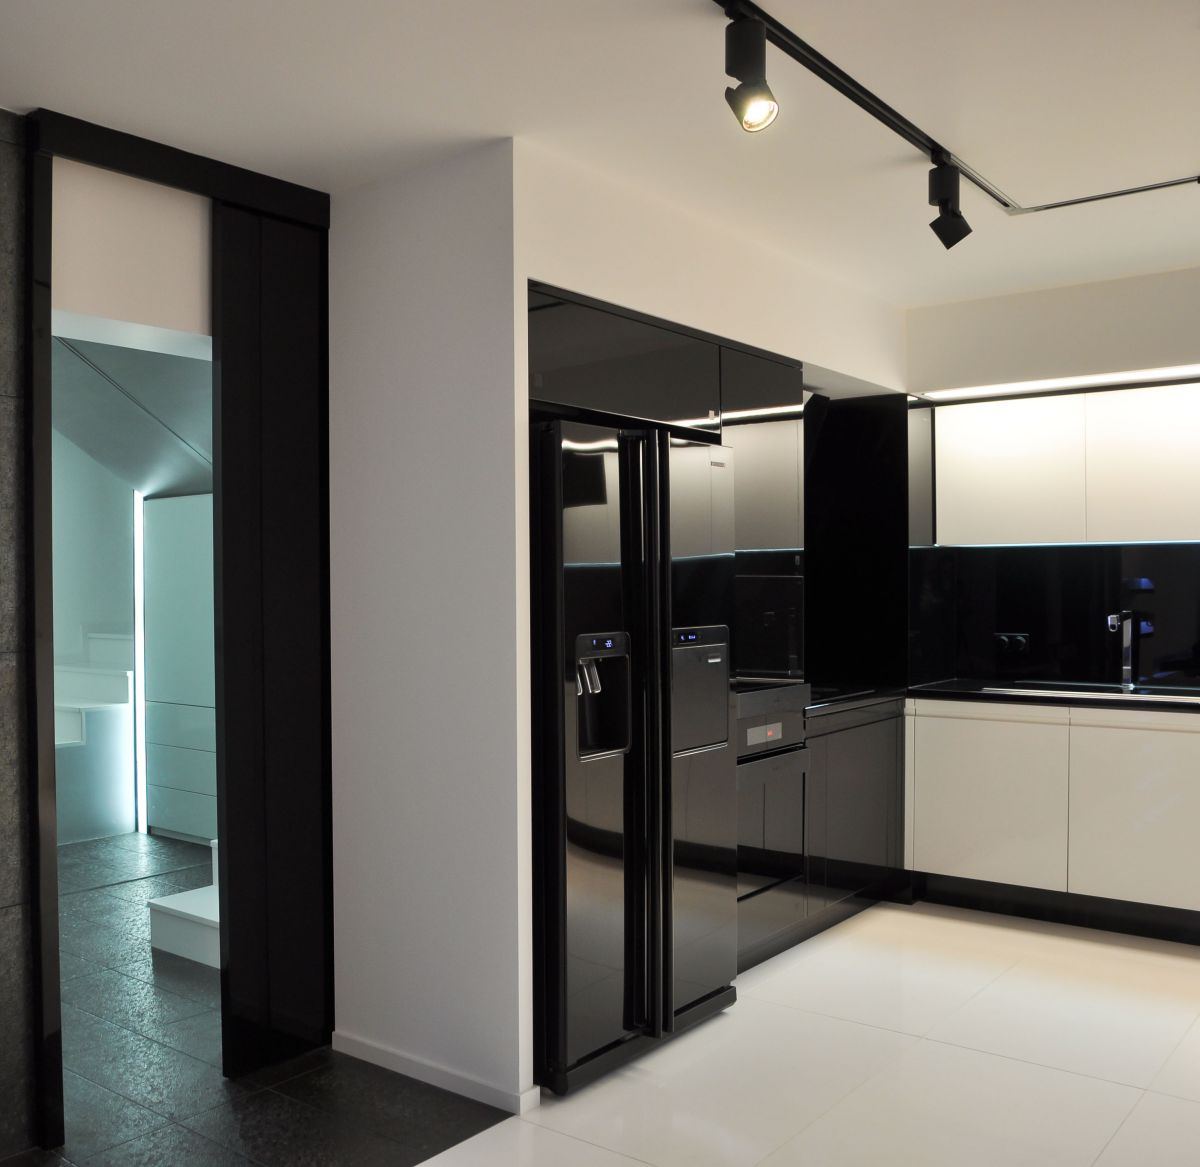 Kitchen, Black Fridge Freezer, Apartment Interior by Jovo Bozhinovski